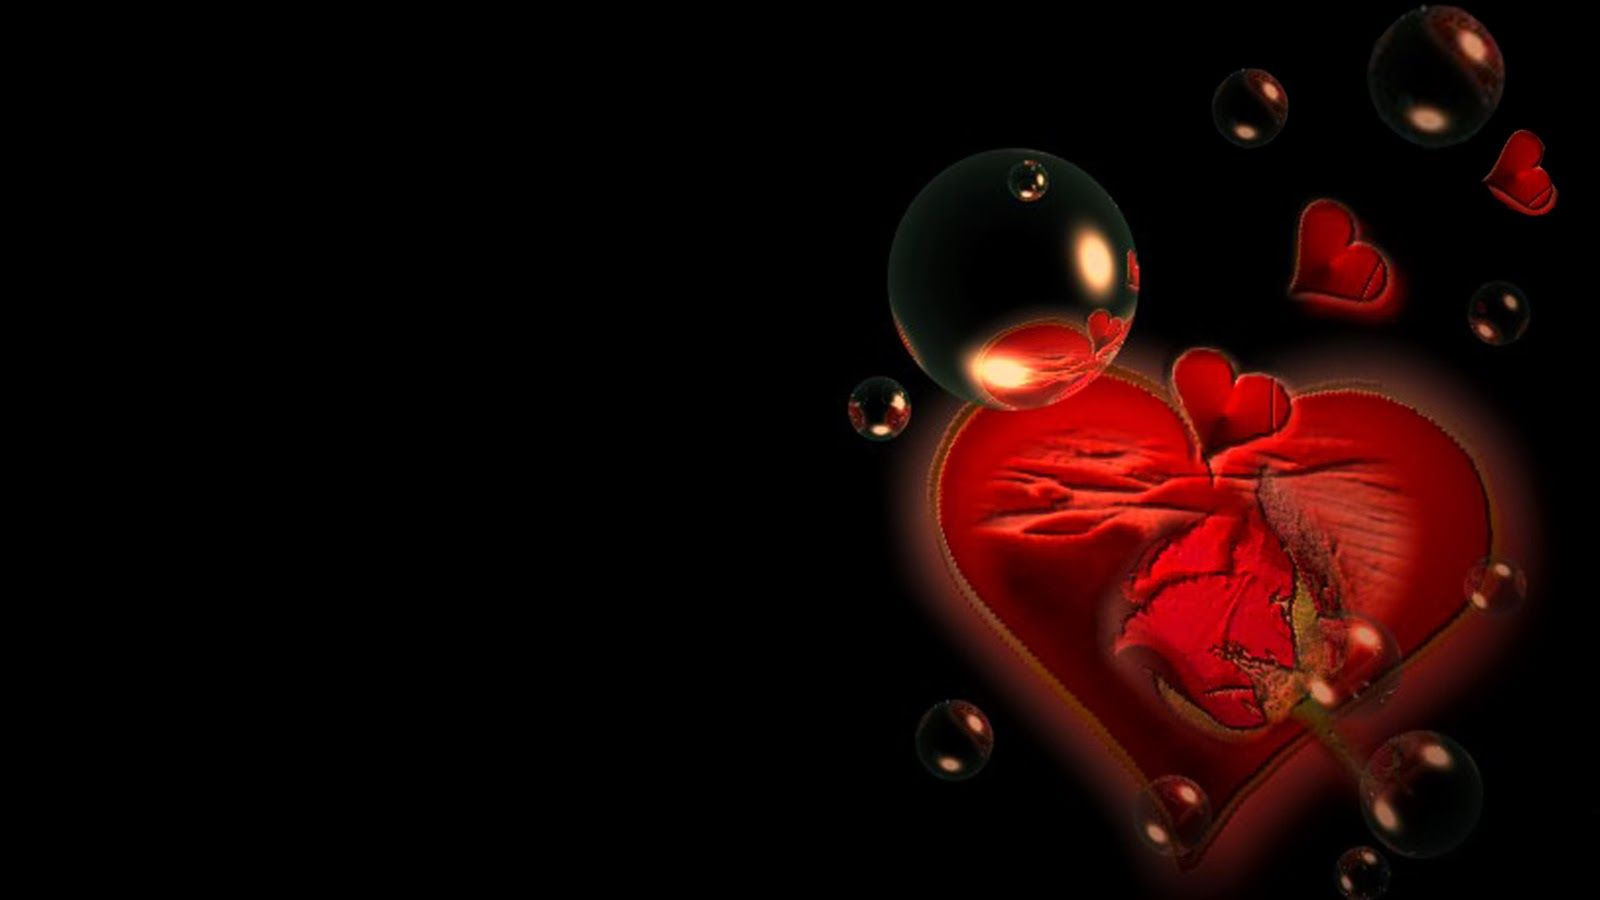 3d Wallpapers For Valentines Day 2014 Love Wallpaper For Mobile Heart Wallpaper Love Wallpaper